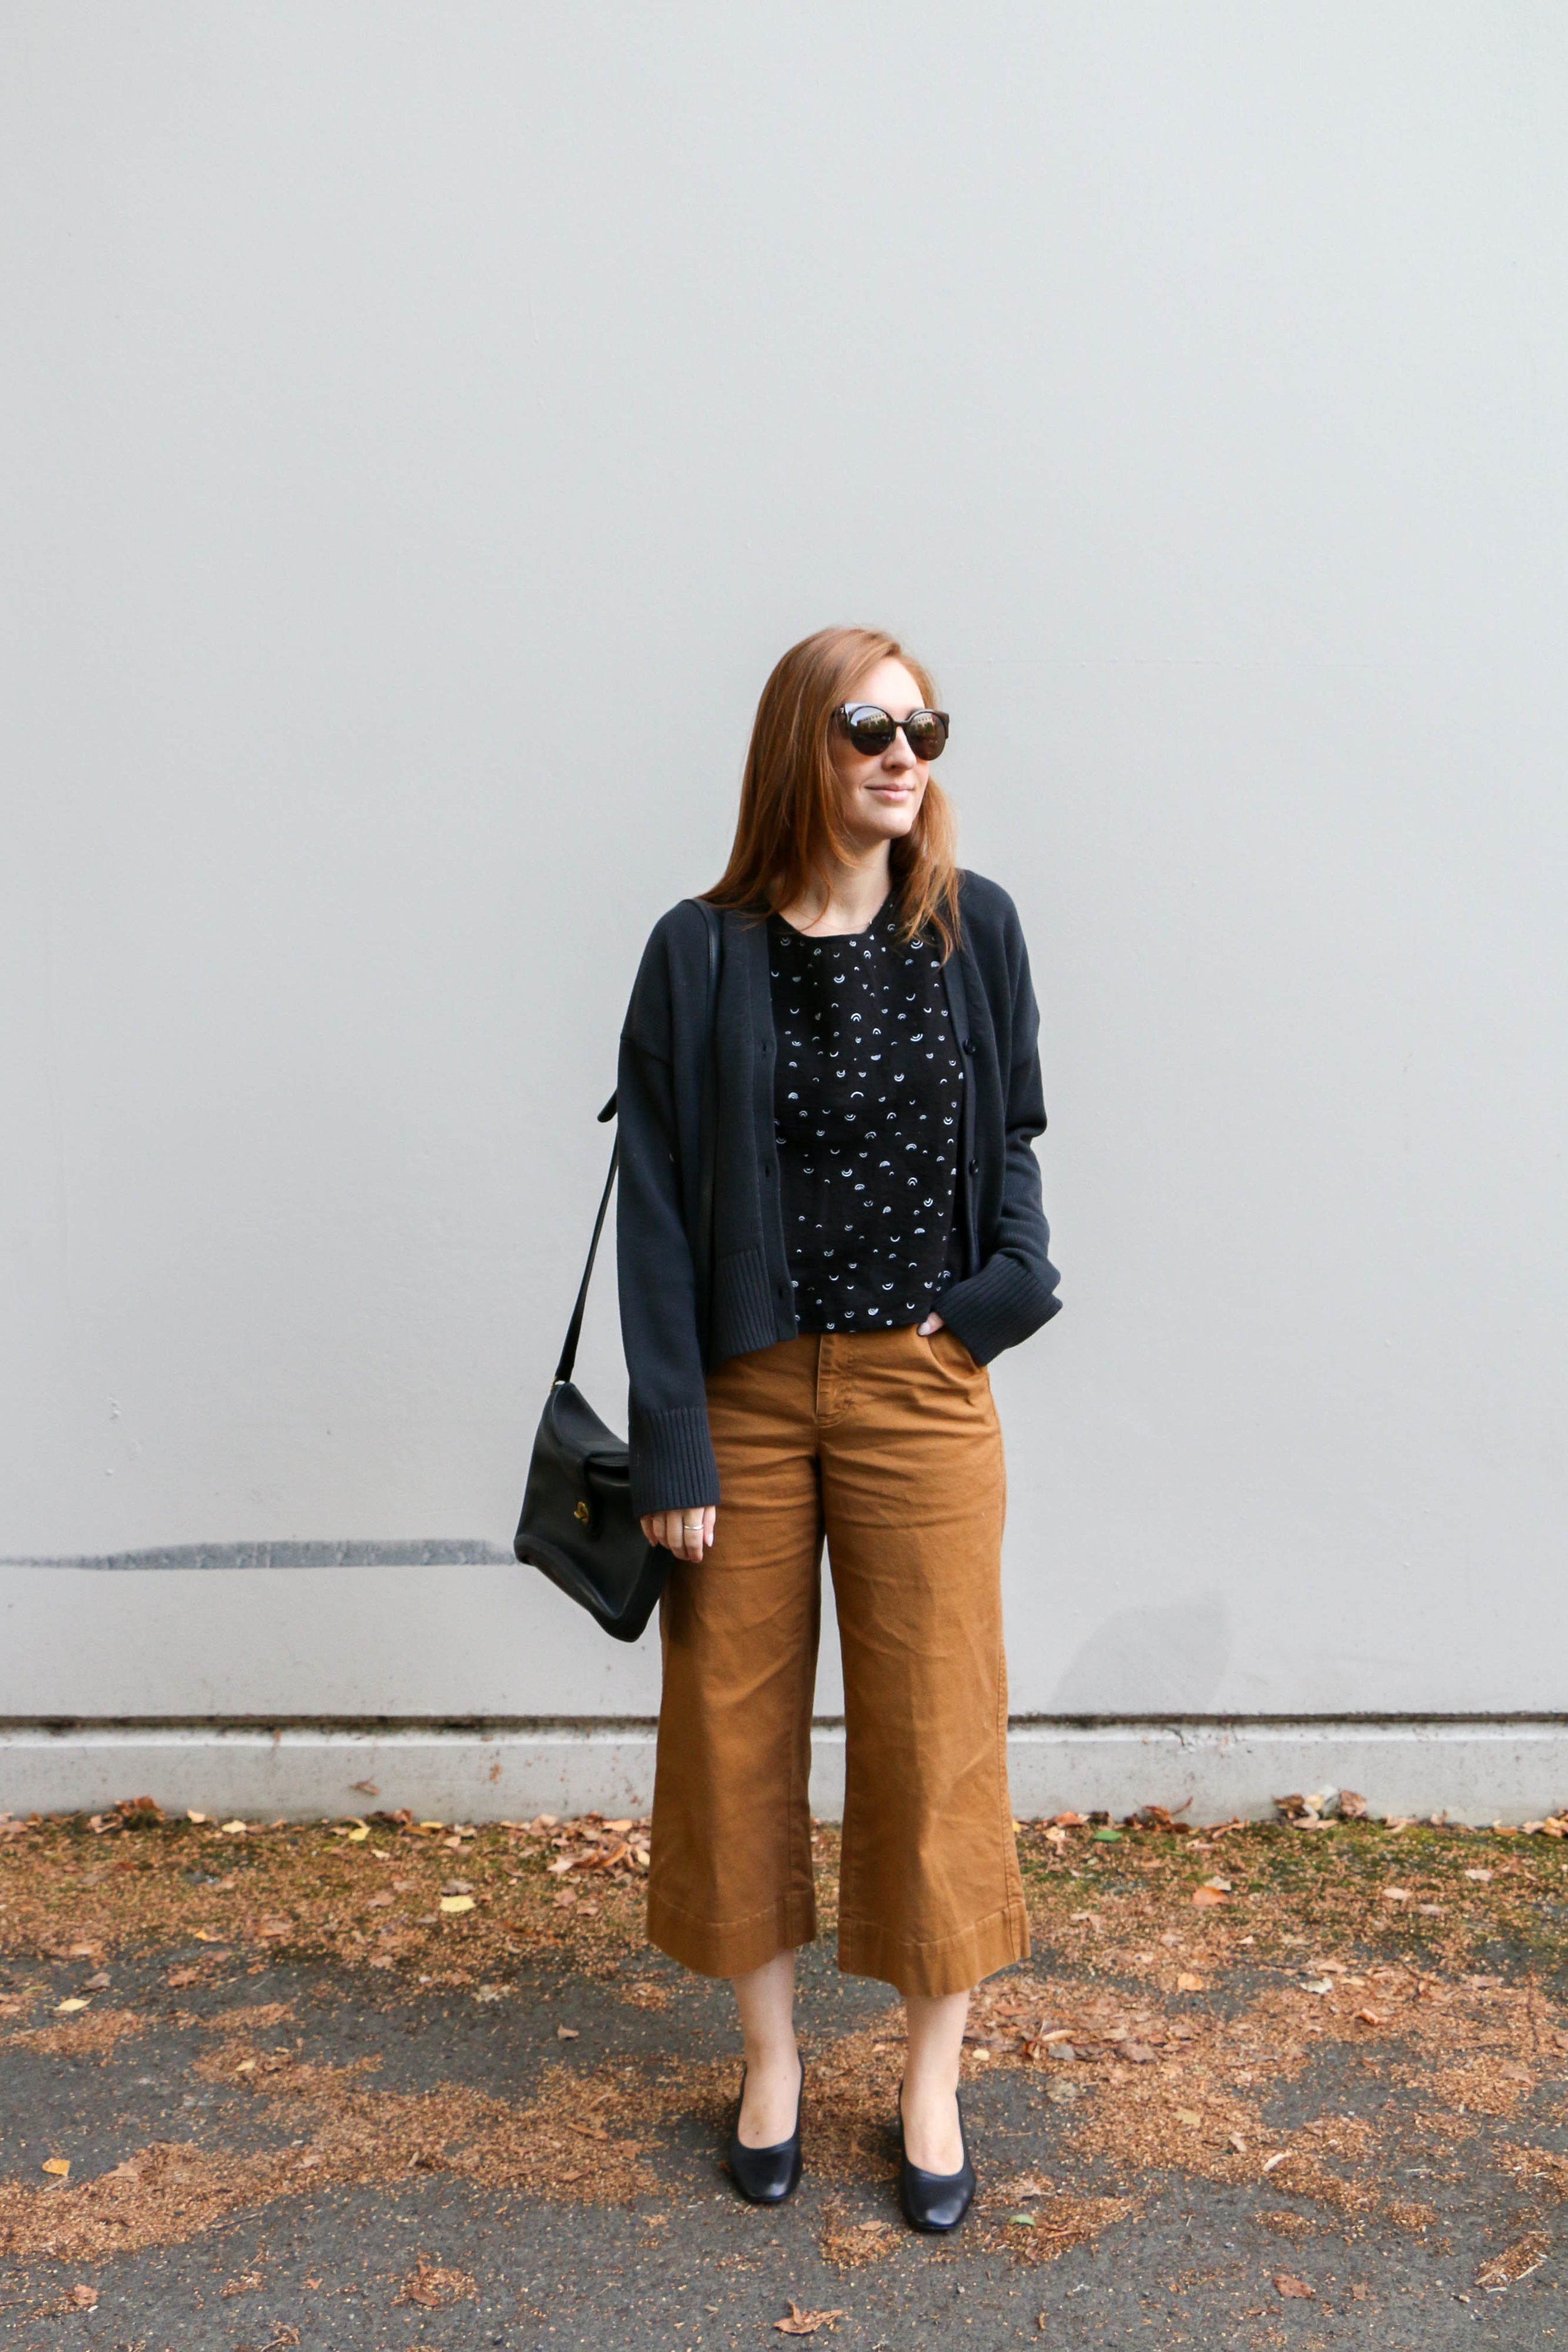 the-thoughtful-closet_fall-10x10_challenge_outfit-3_-5.jpg